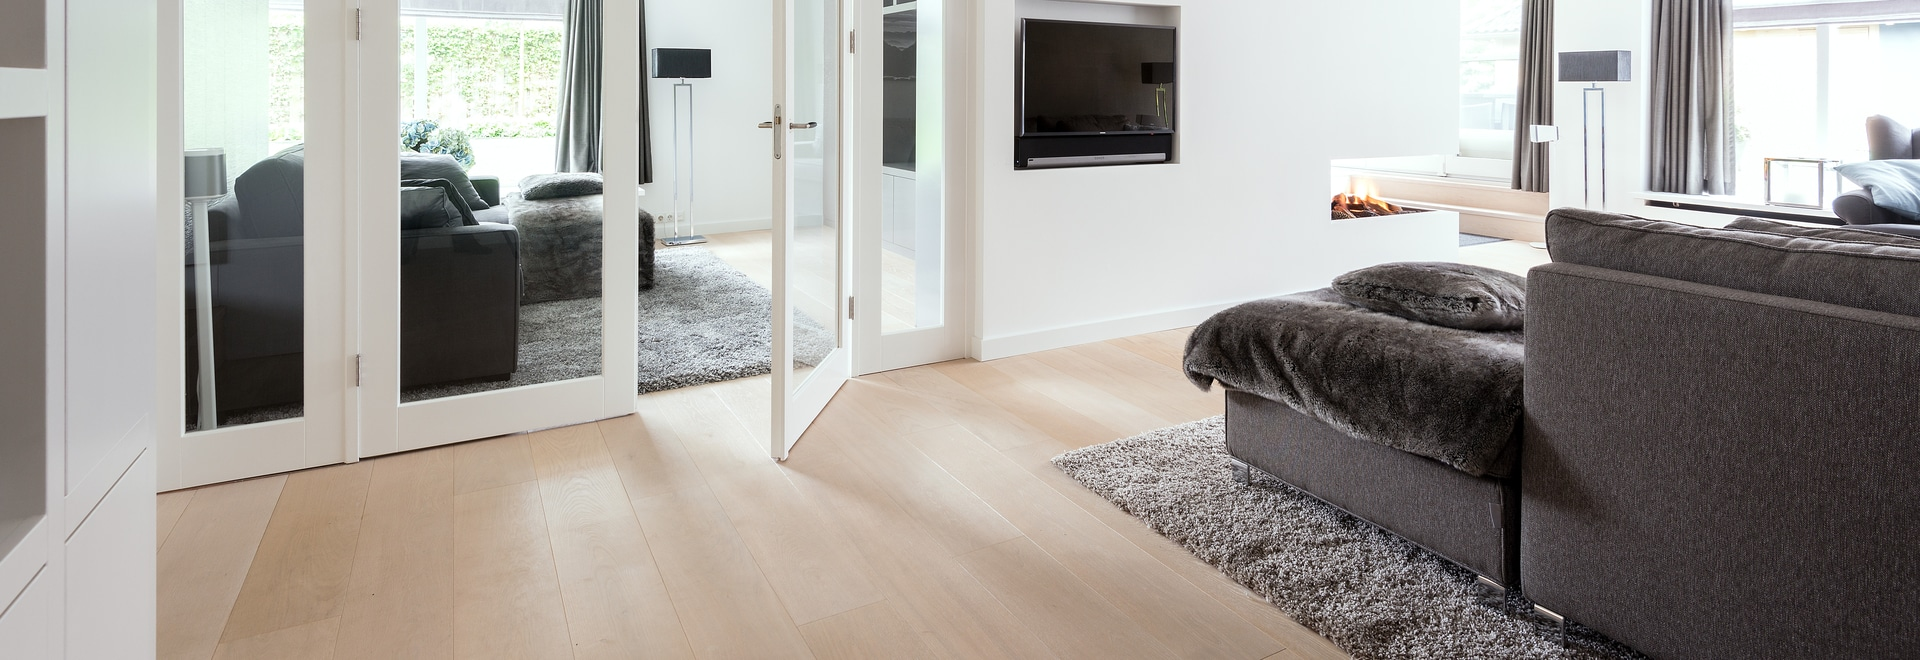 Dennebos engineered Oak floor in W.08 color